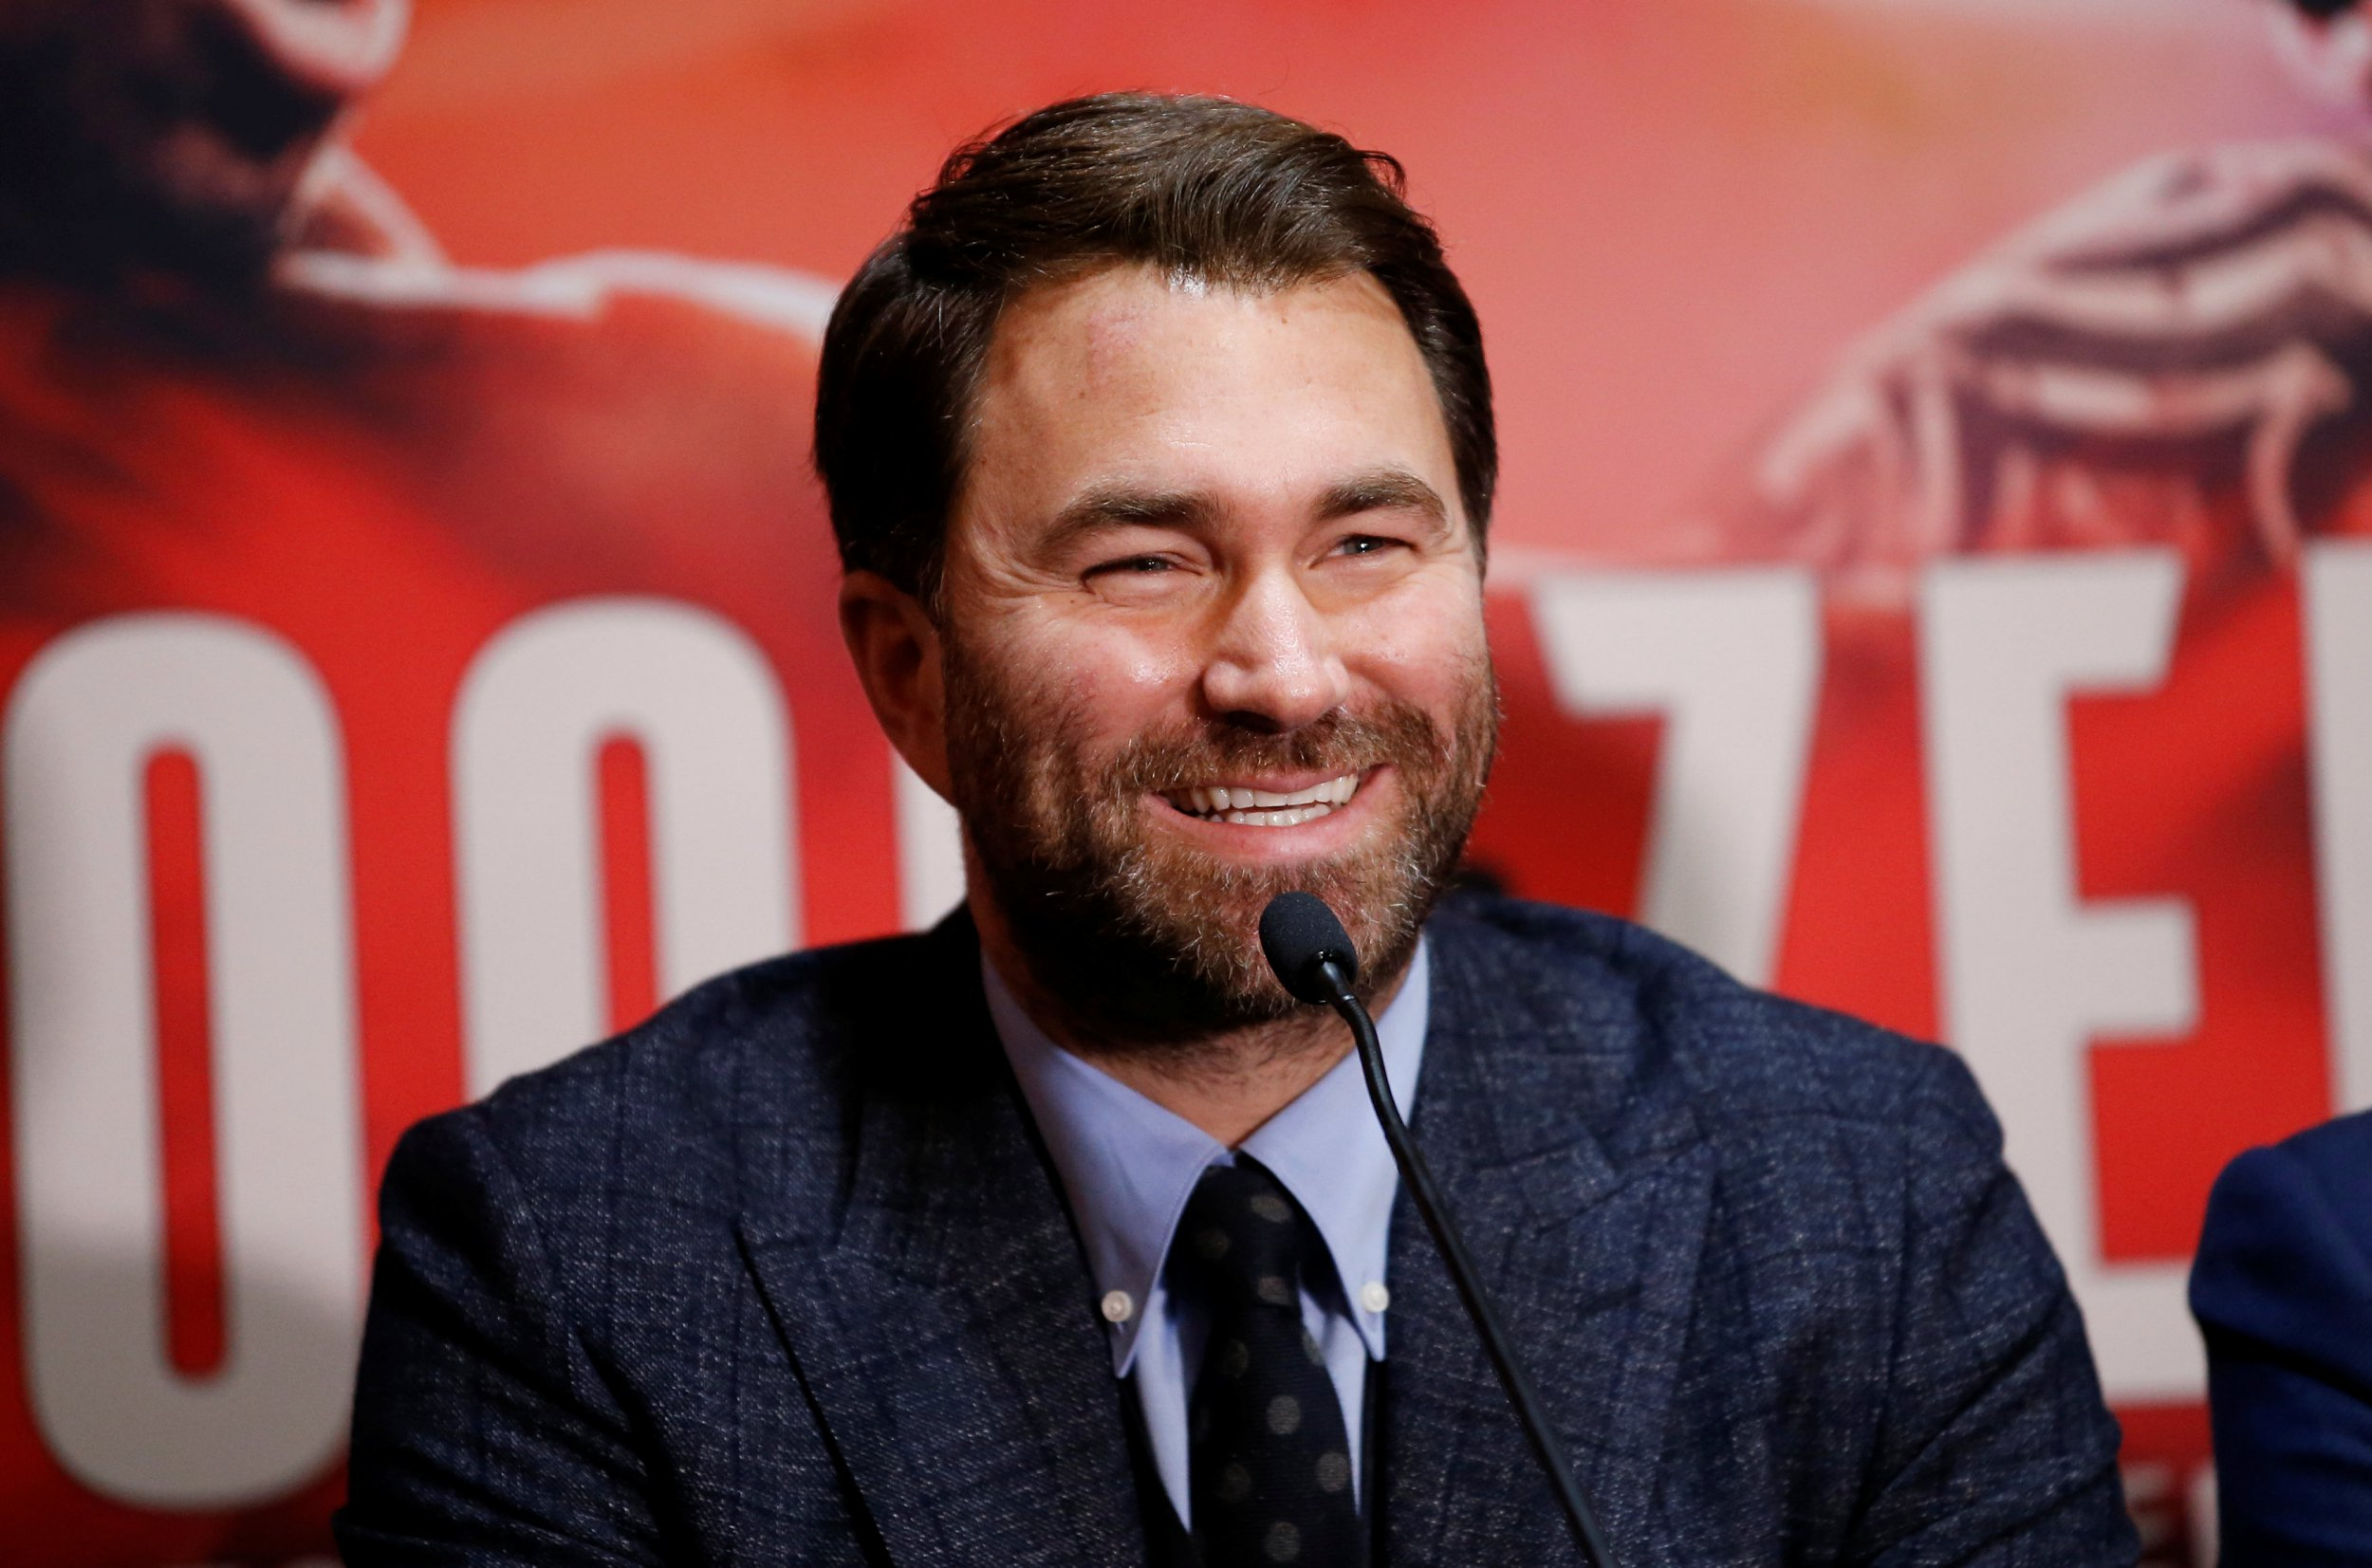 Boxing - Kell Brook & Michael Zerafa Press Conference - Bramall Lane, Sheffield, Britain - December 6, 2018 Promoter Eddie Hearn during the press conference Action Images via Reuters/Craig Brough